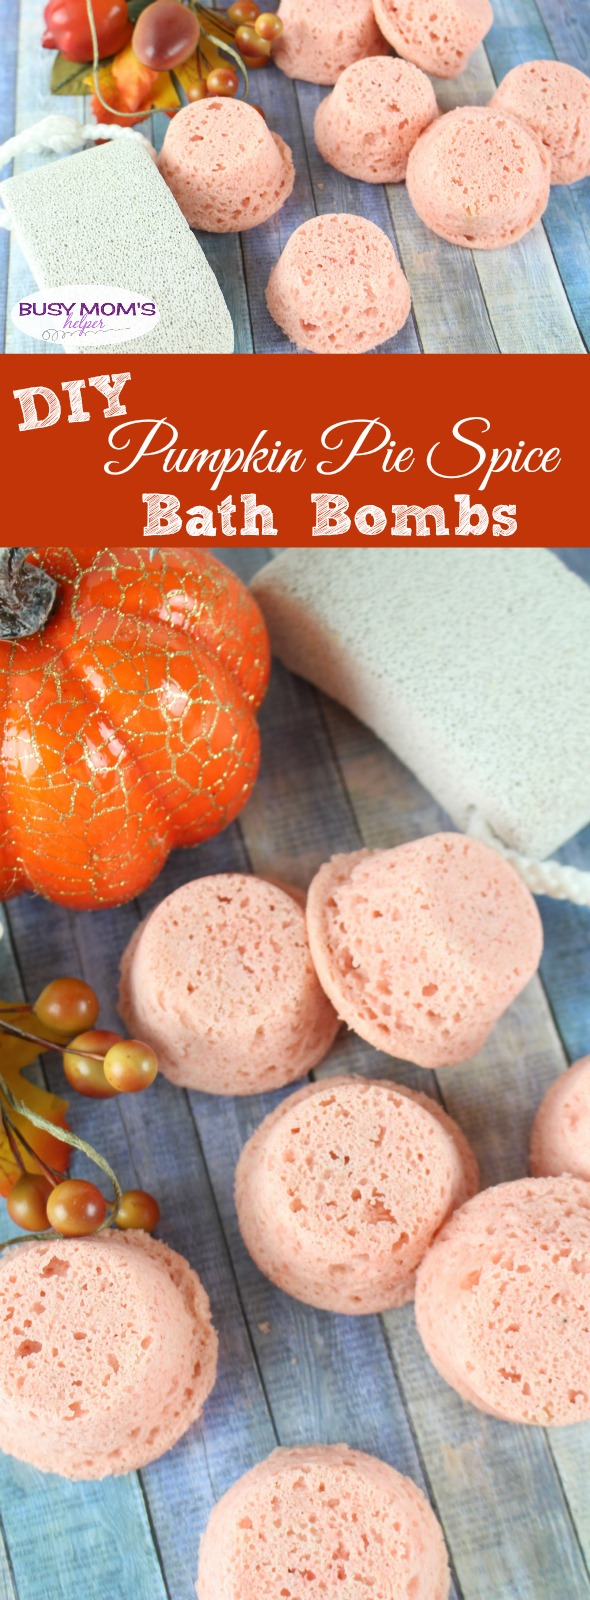 DIY Pumpkin Pie Spice Bath Bombs